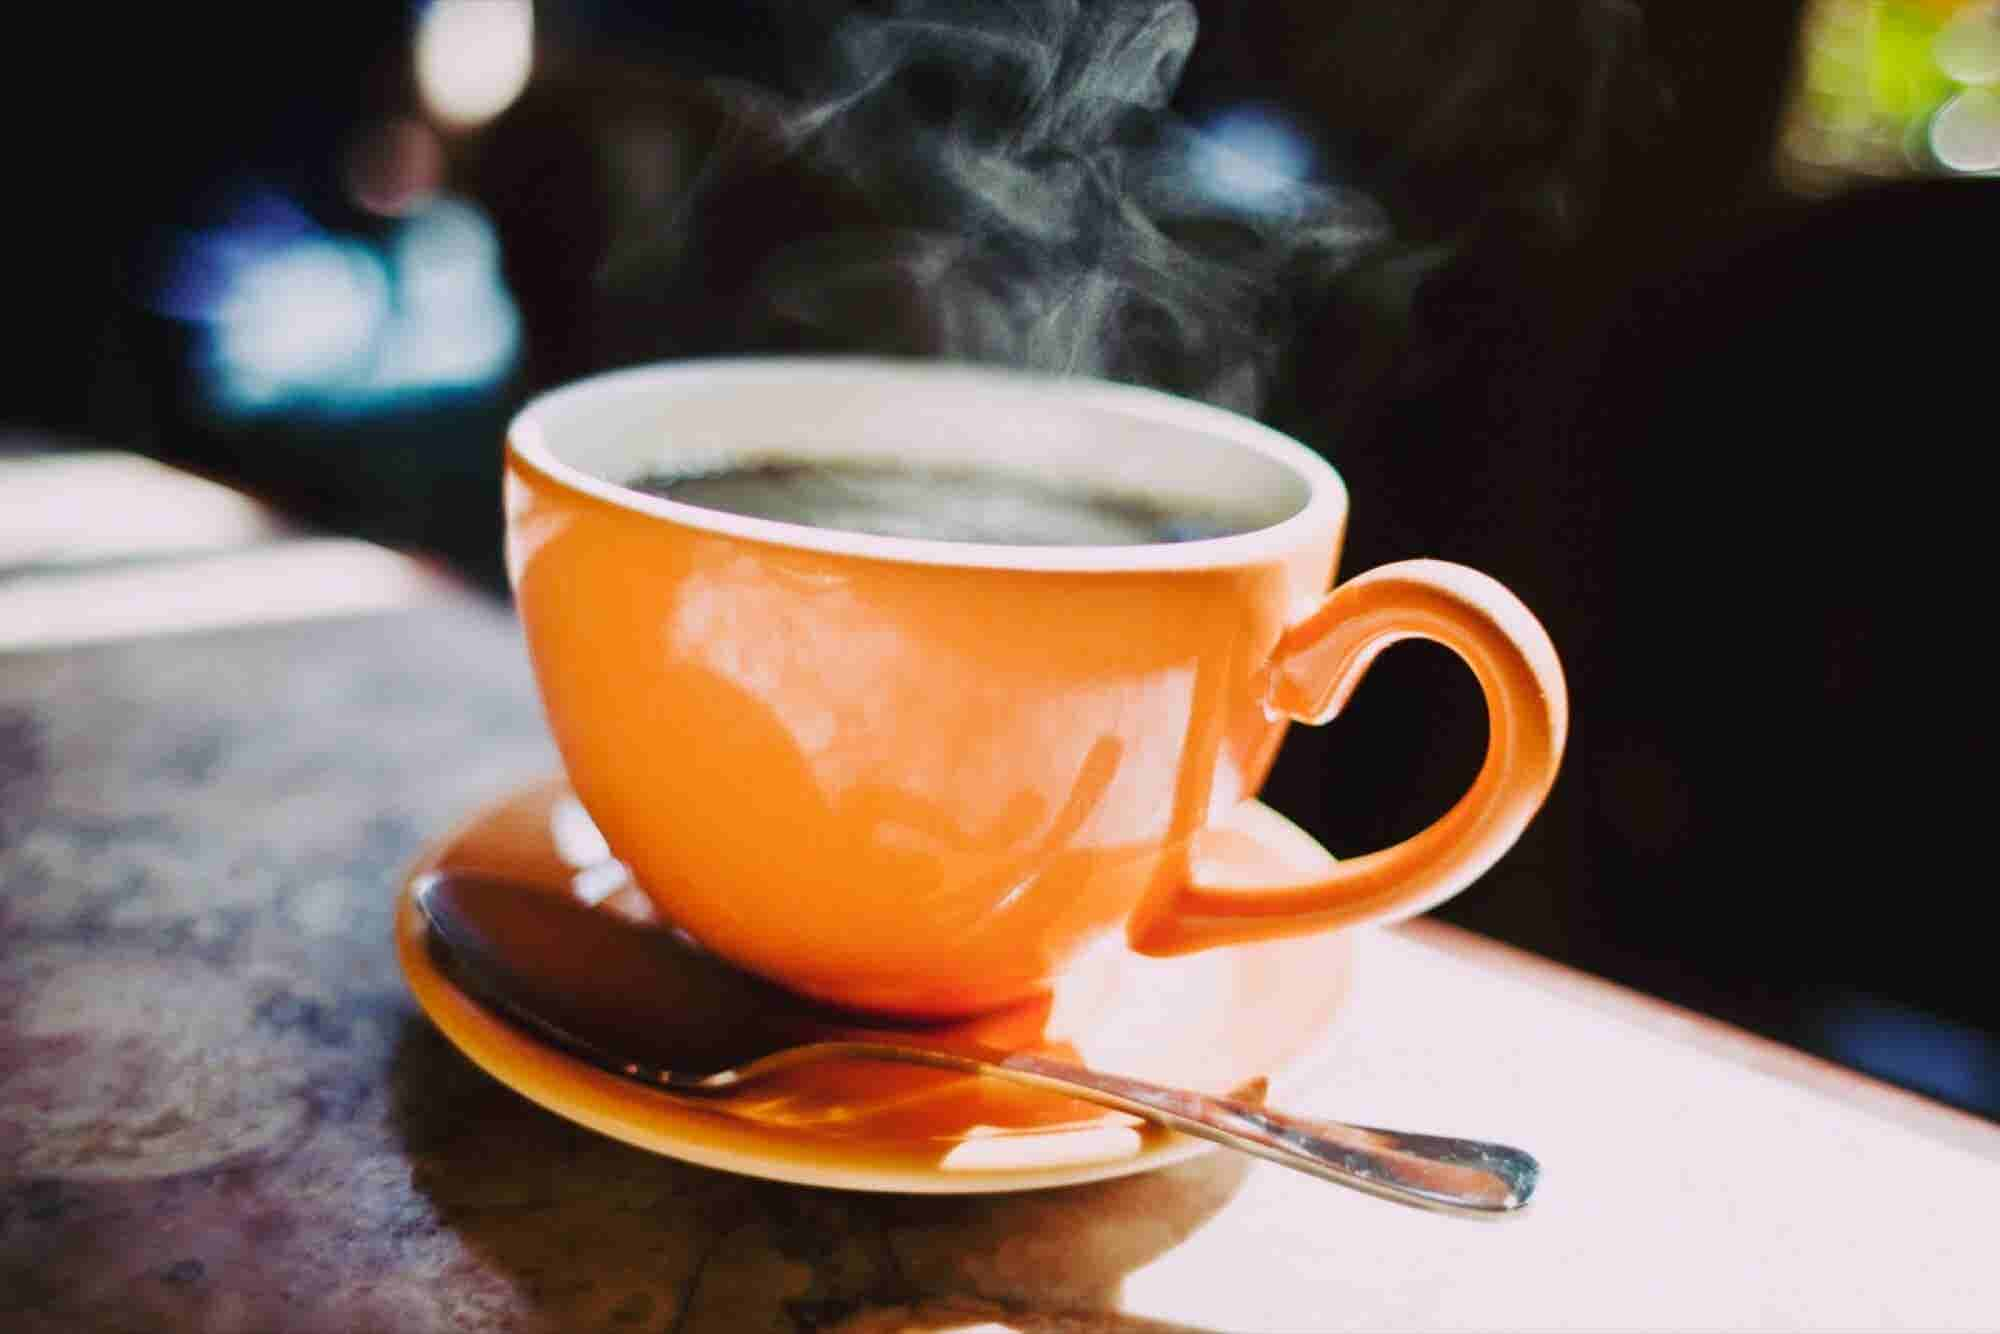 Drinking Lots of Coffee Could Be Making People Dumb, Study Claims